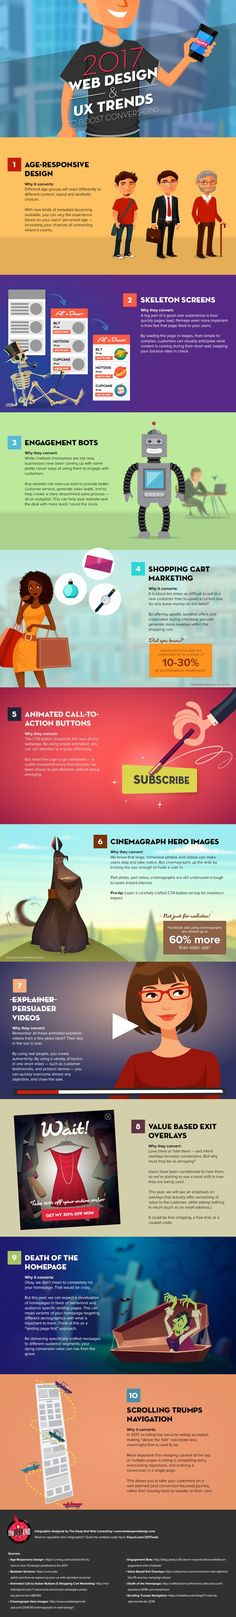 10 web design trends to look for in 2017. #Infographic